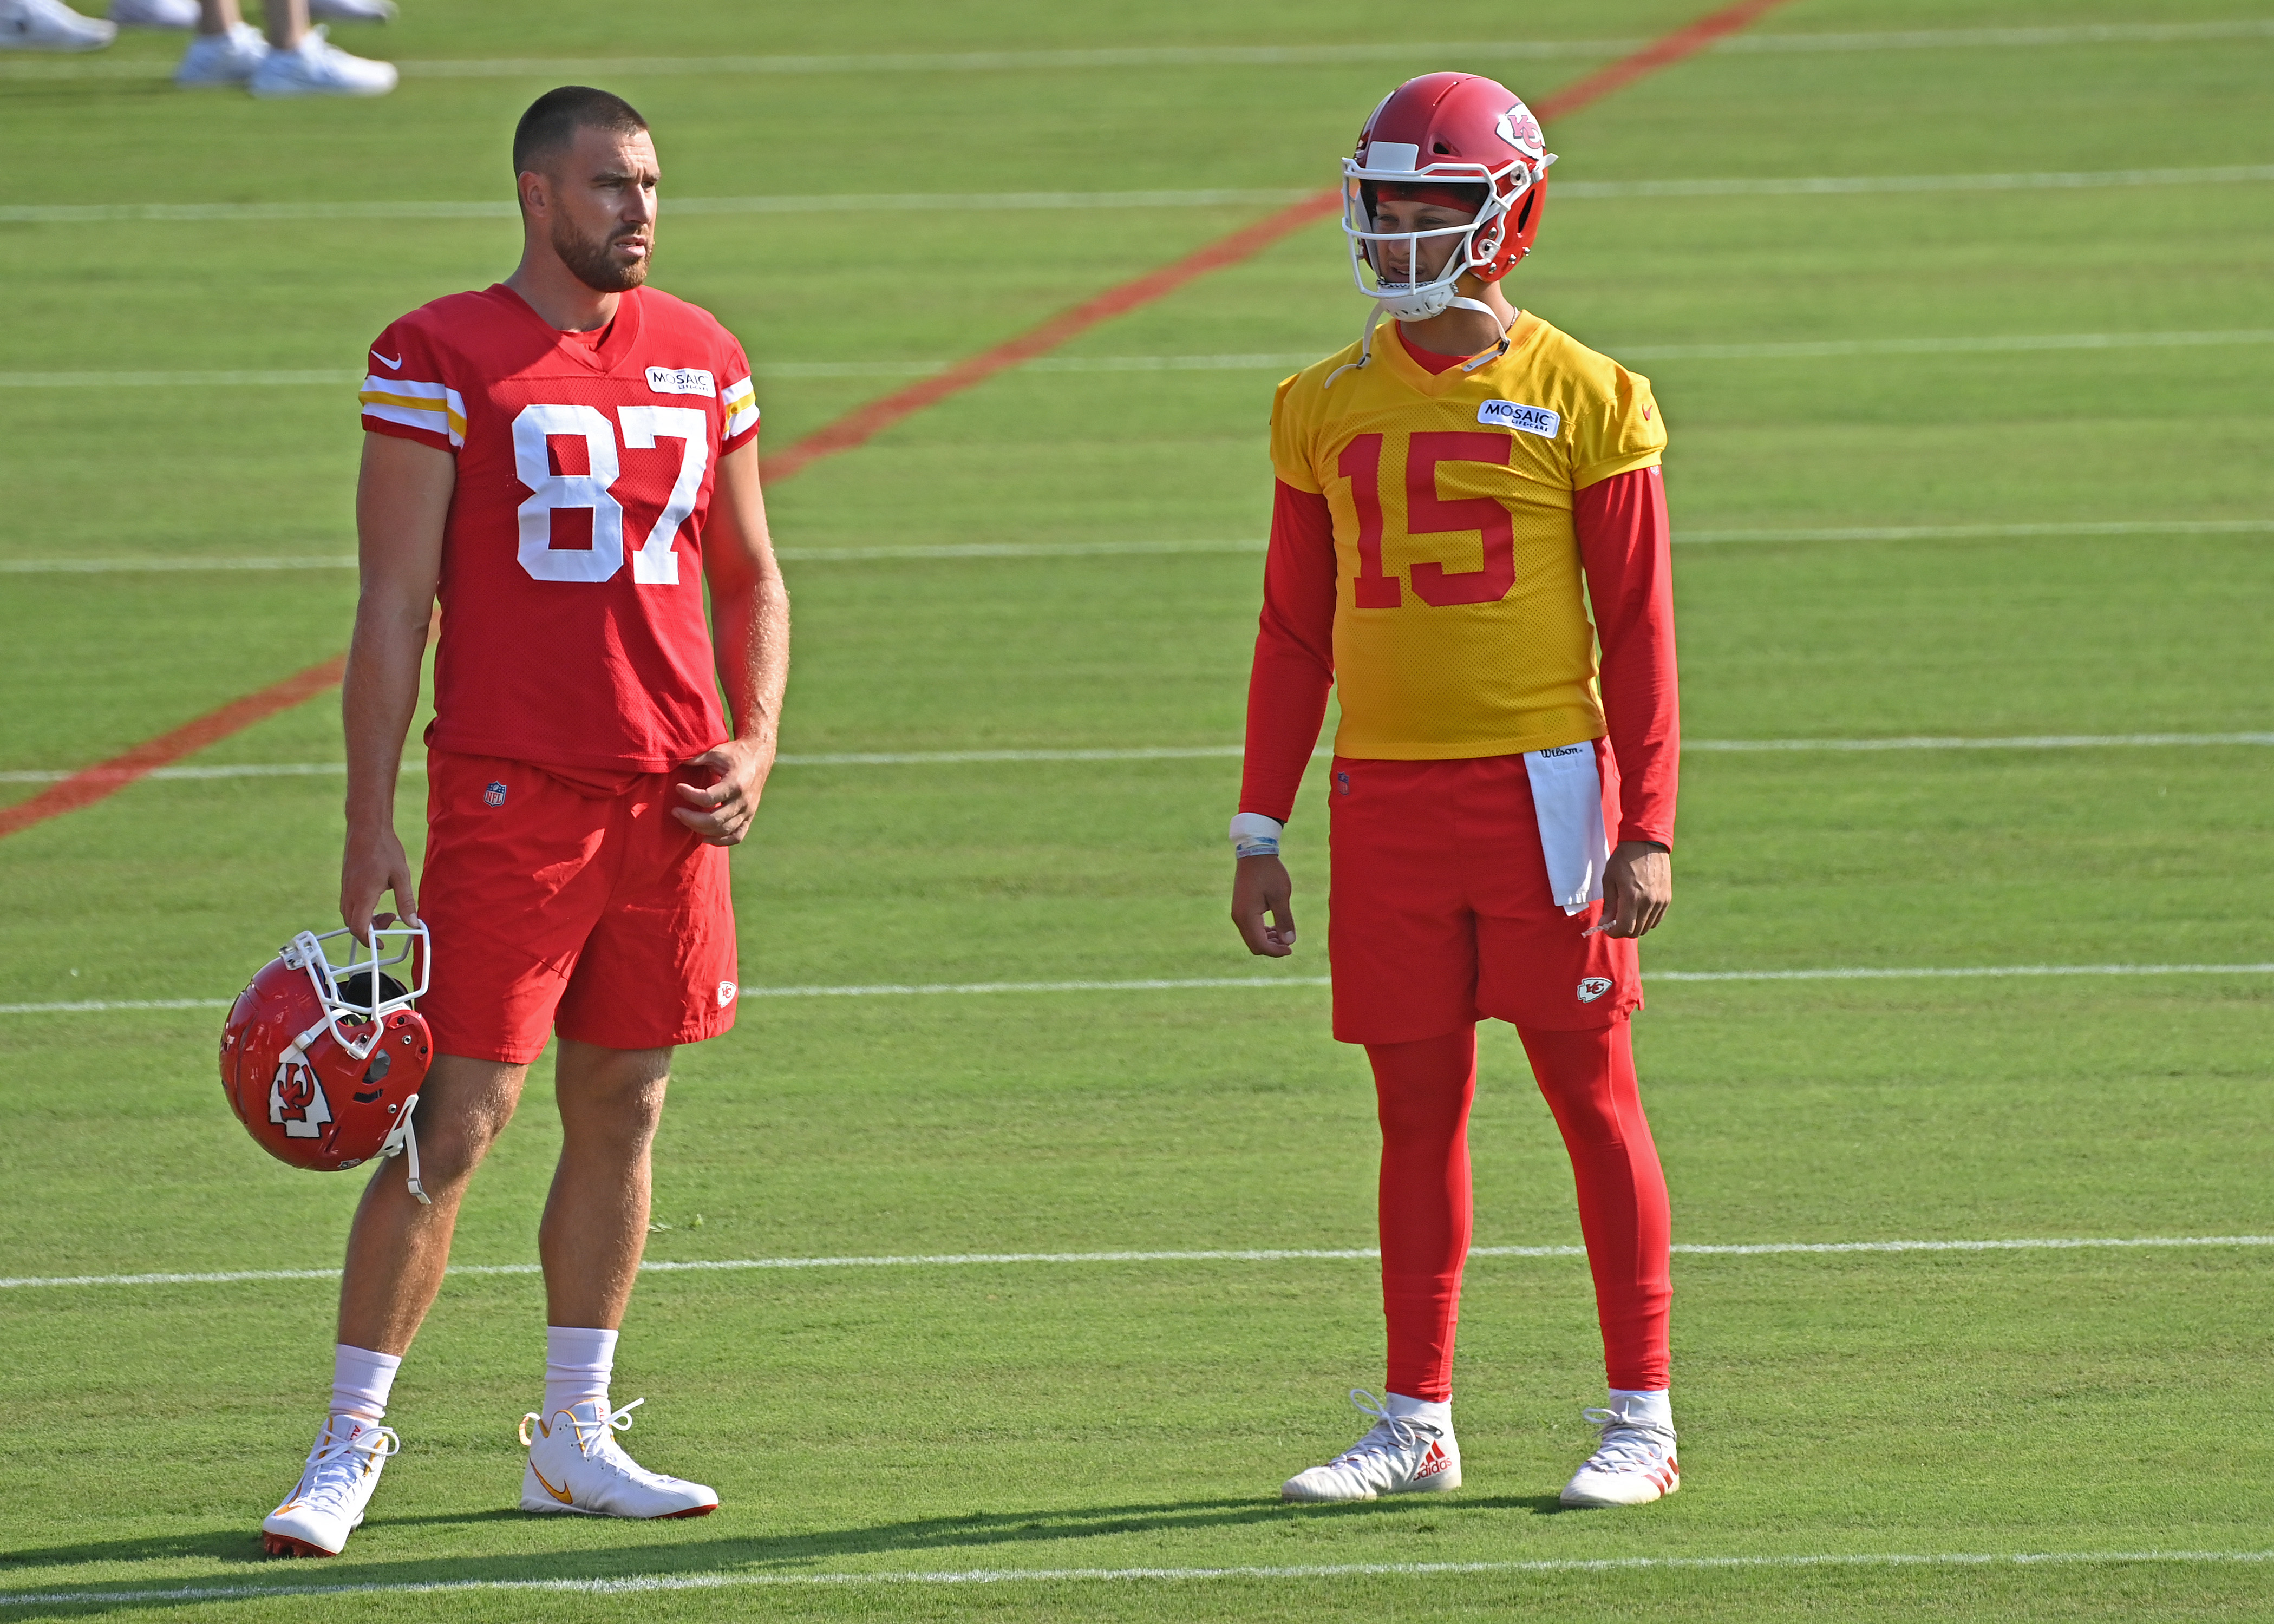 Quarterback Patrick Mahomes #15 and tight end Travis Kelce #87 of the Kansas City Chiefs talk during training camp at Missouri Western State University on July 28, 2021 in St Joseph, Missouri.